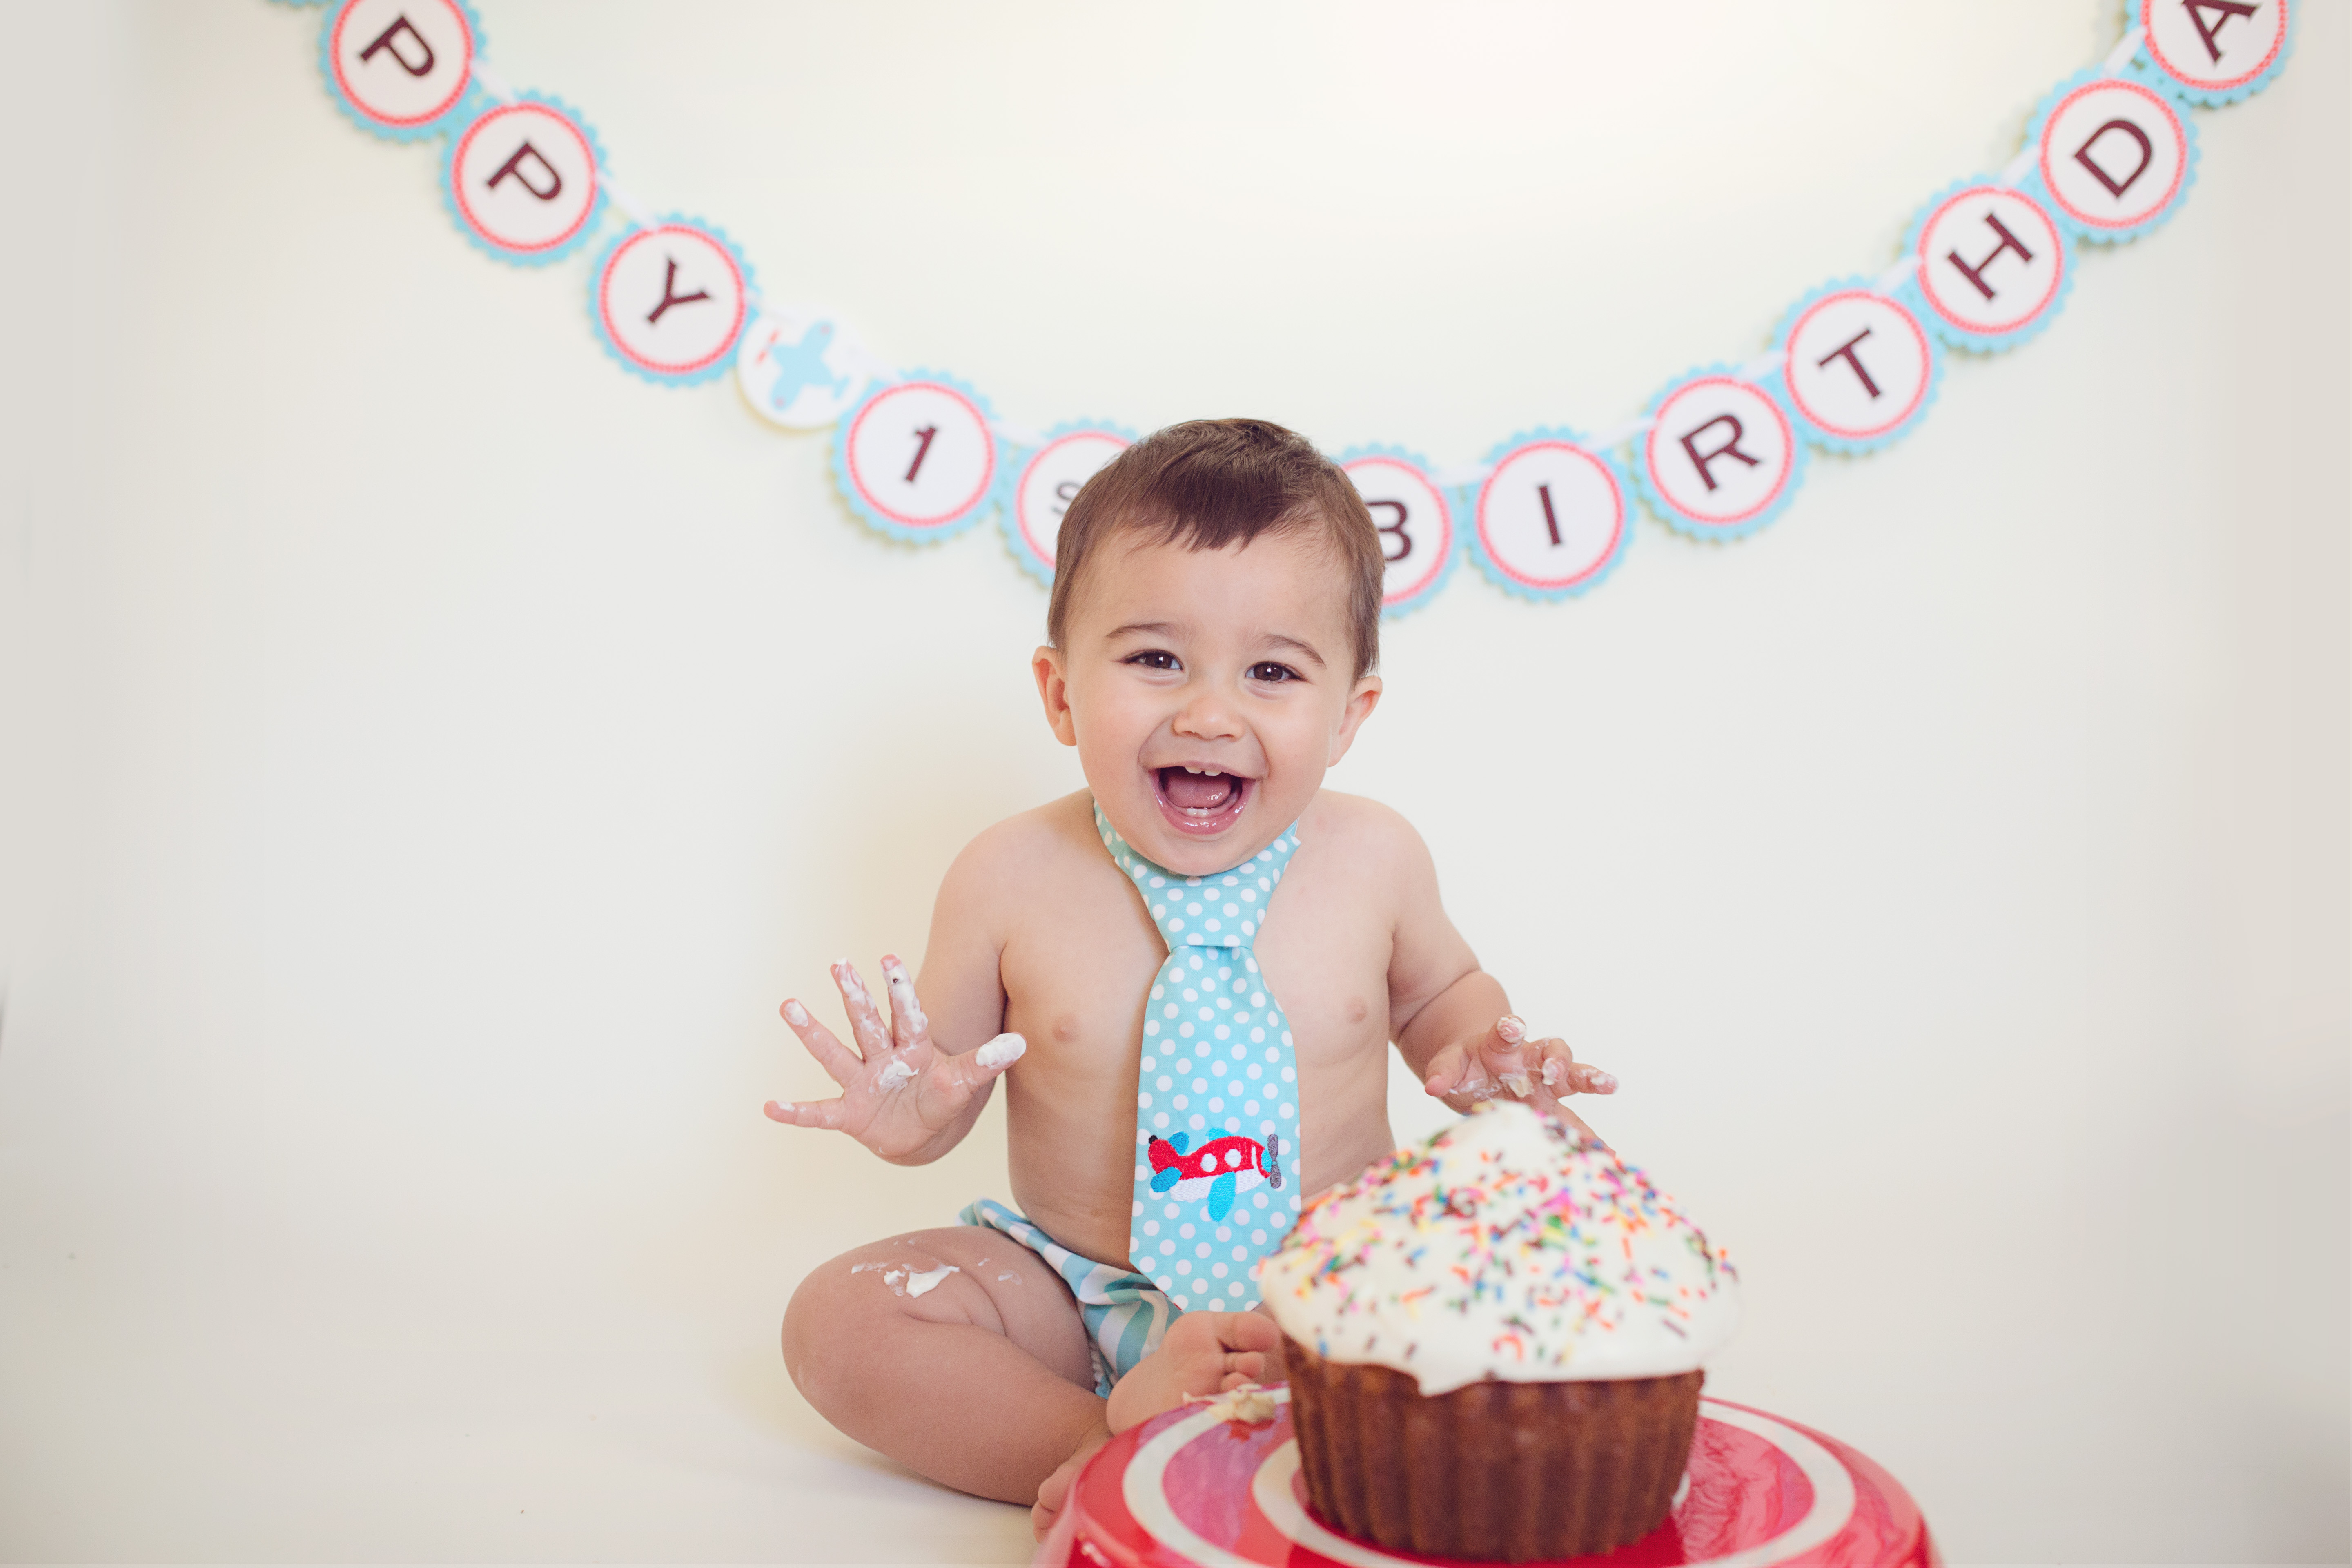 This Was A Fun Little Cake Smash Session With Very Happy Just Turned 1 Year Old Im Not So Sure He Loved The All That Much But Did